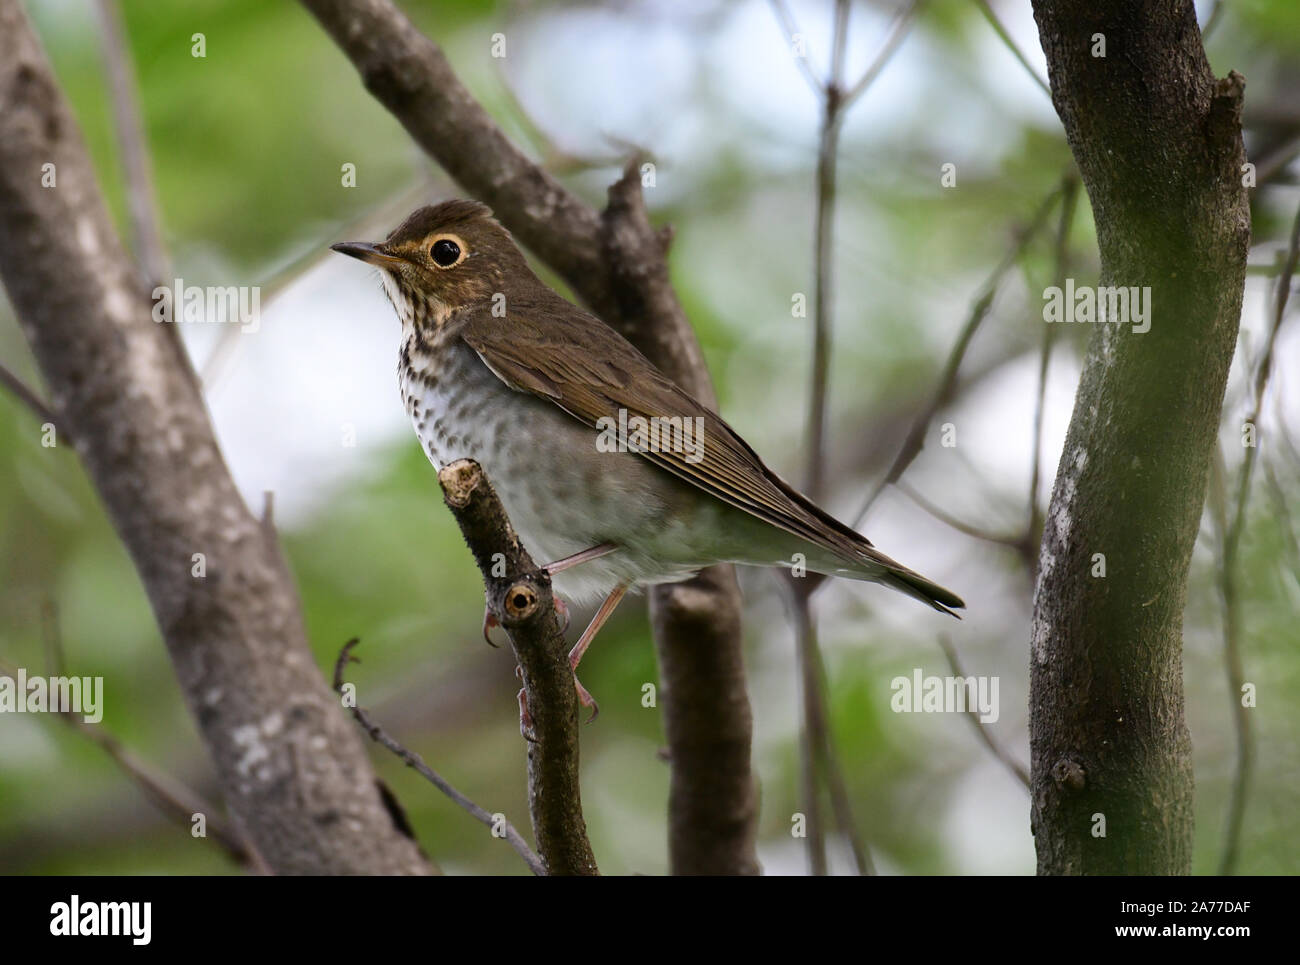 Close up of a beautiful Swainson's Thrush (Catharus ustulatus), also called Olive-backed Thrush in the forests of Panama. Stock Photo